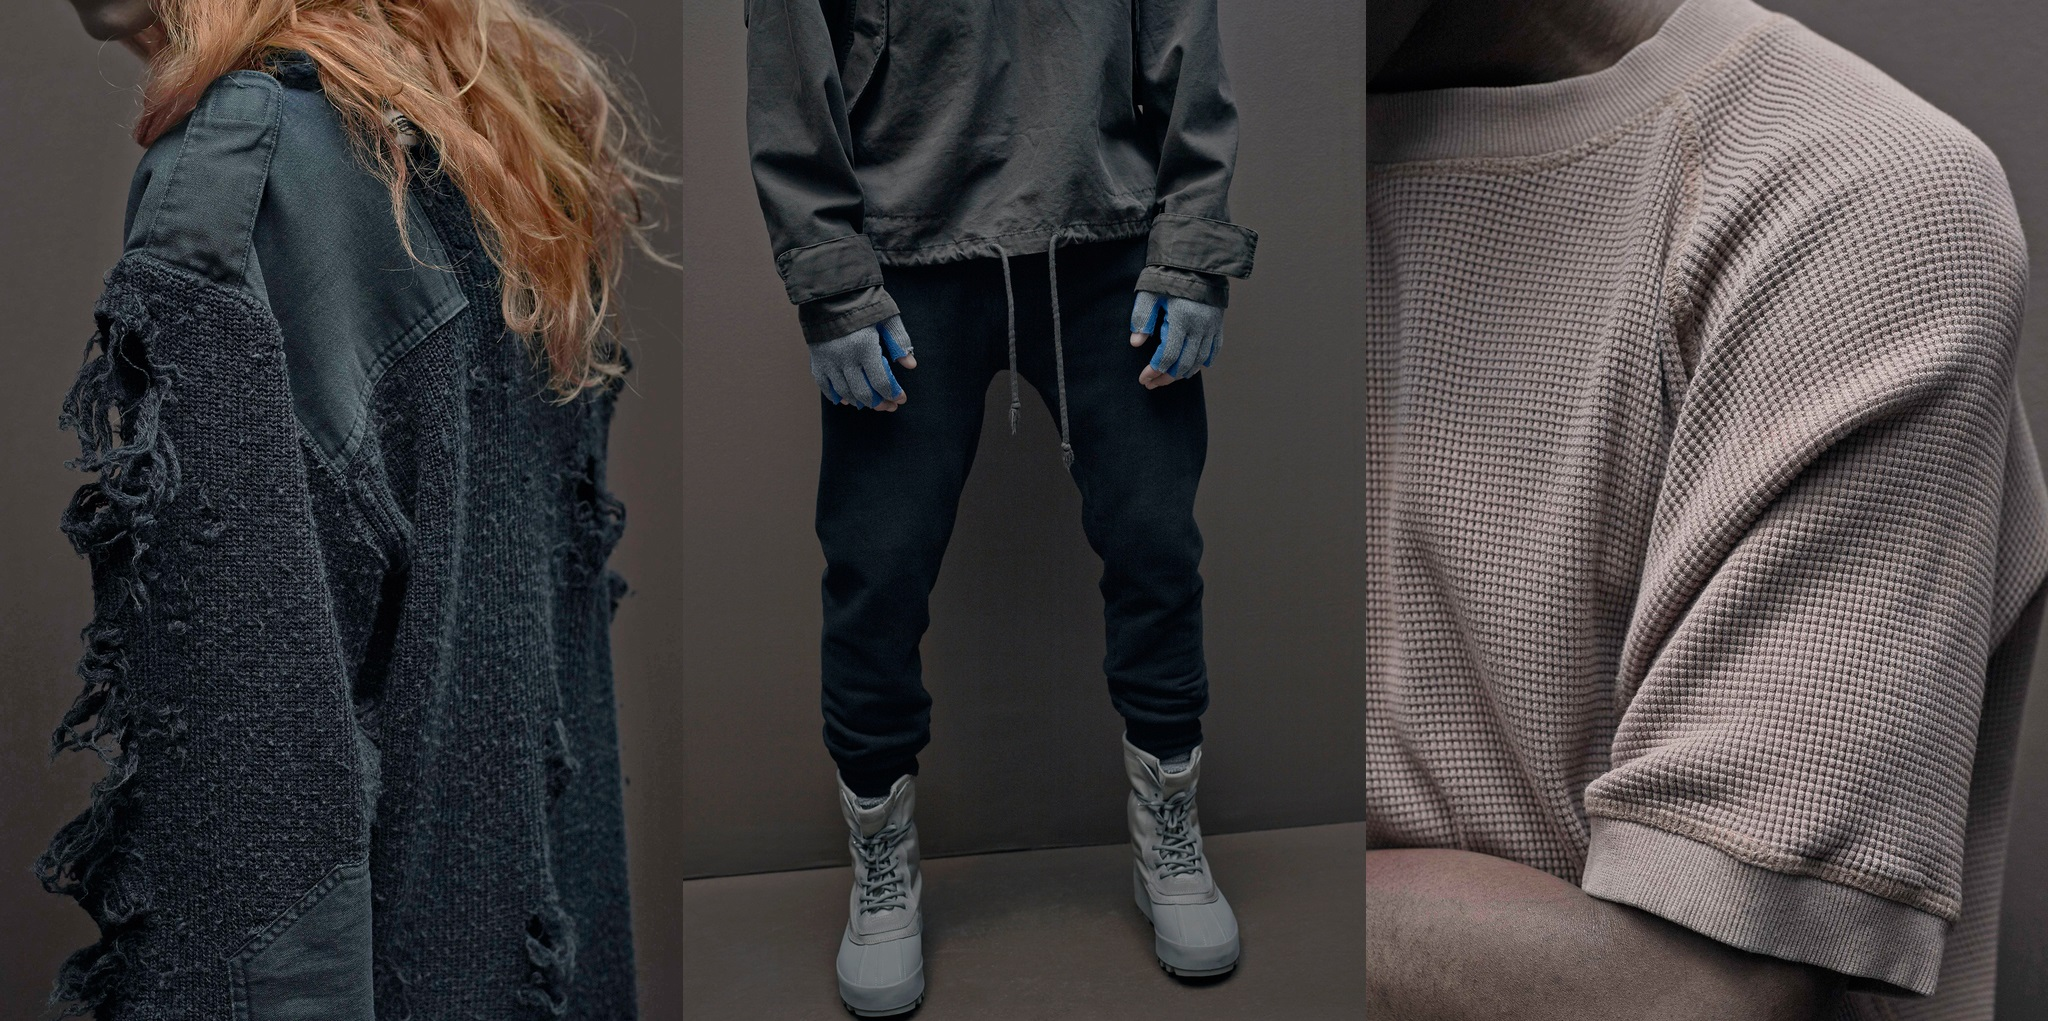 YEEZY SEASON ONE: THESE ARE THE DETAILS